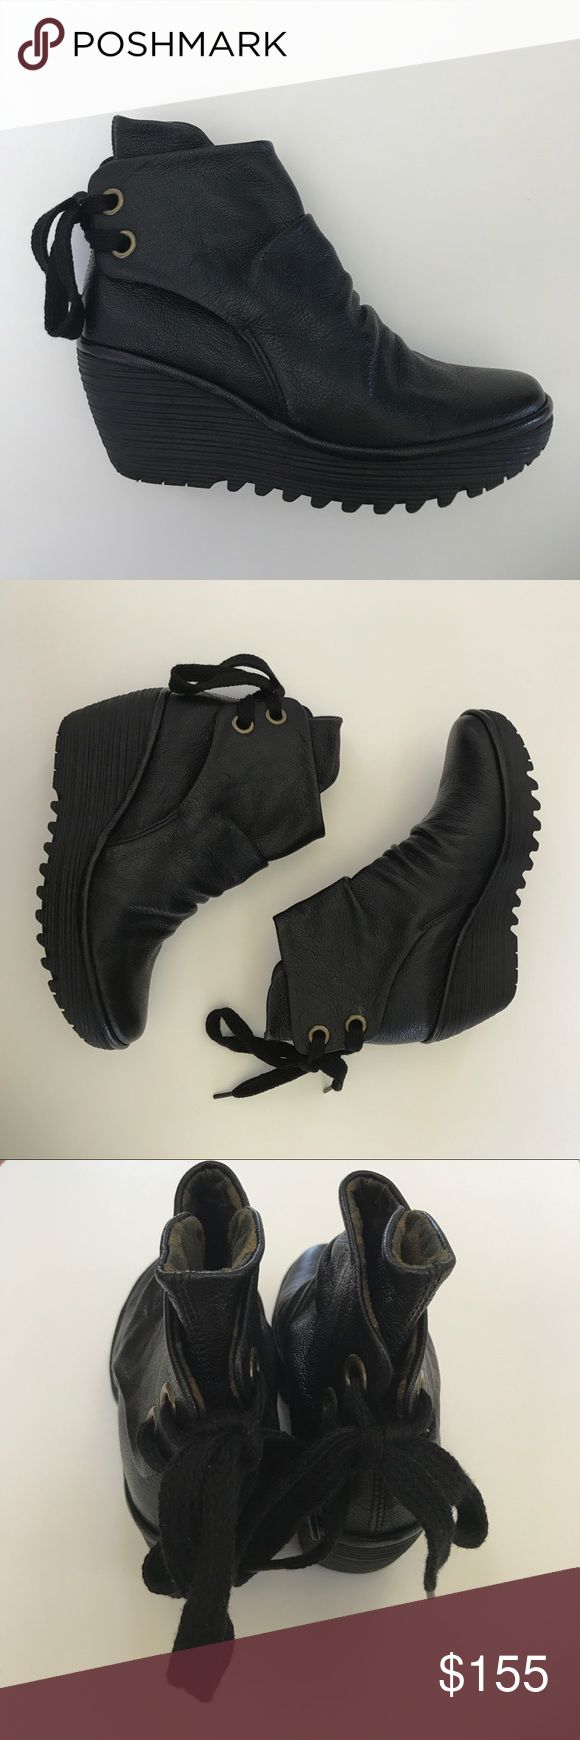 "Fly London Yama boots 37 new no box Fly London Yama Bootie Women 37 US 6-6.5 Black Mousse Ankle Lace Up Back New New no box Size 37 EUR, US size 6-6.5 M 2.5"" heel Fast Shipping! Comes from smoke and pet free home. Fly London Shoes Ankle Boots & Booties"